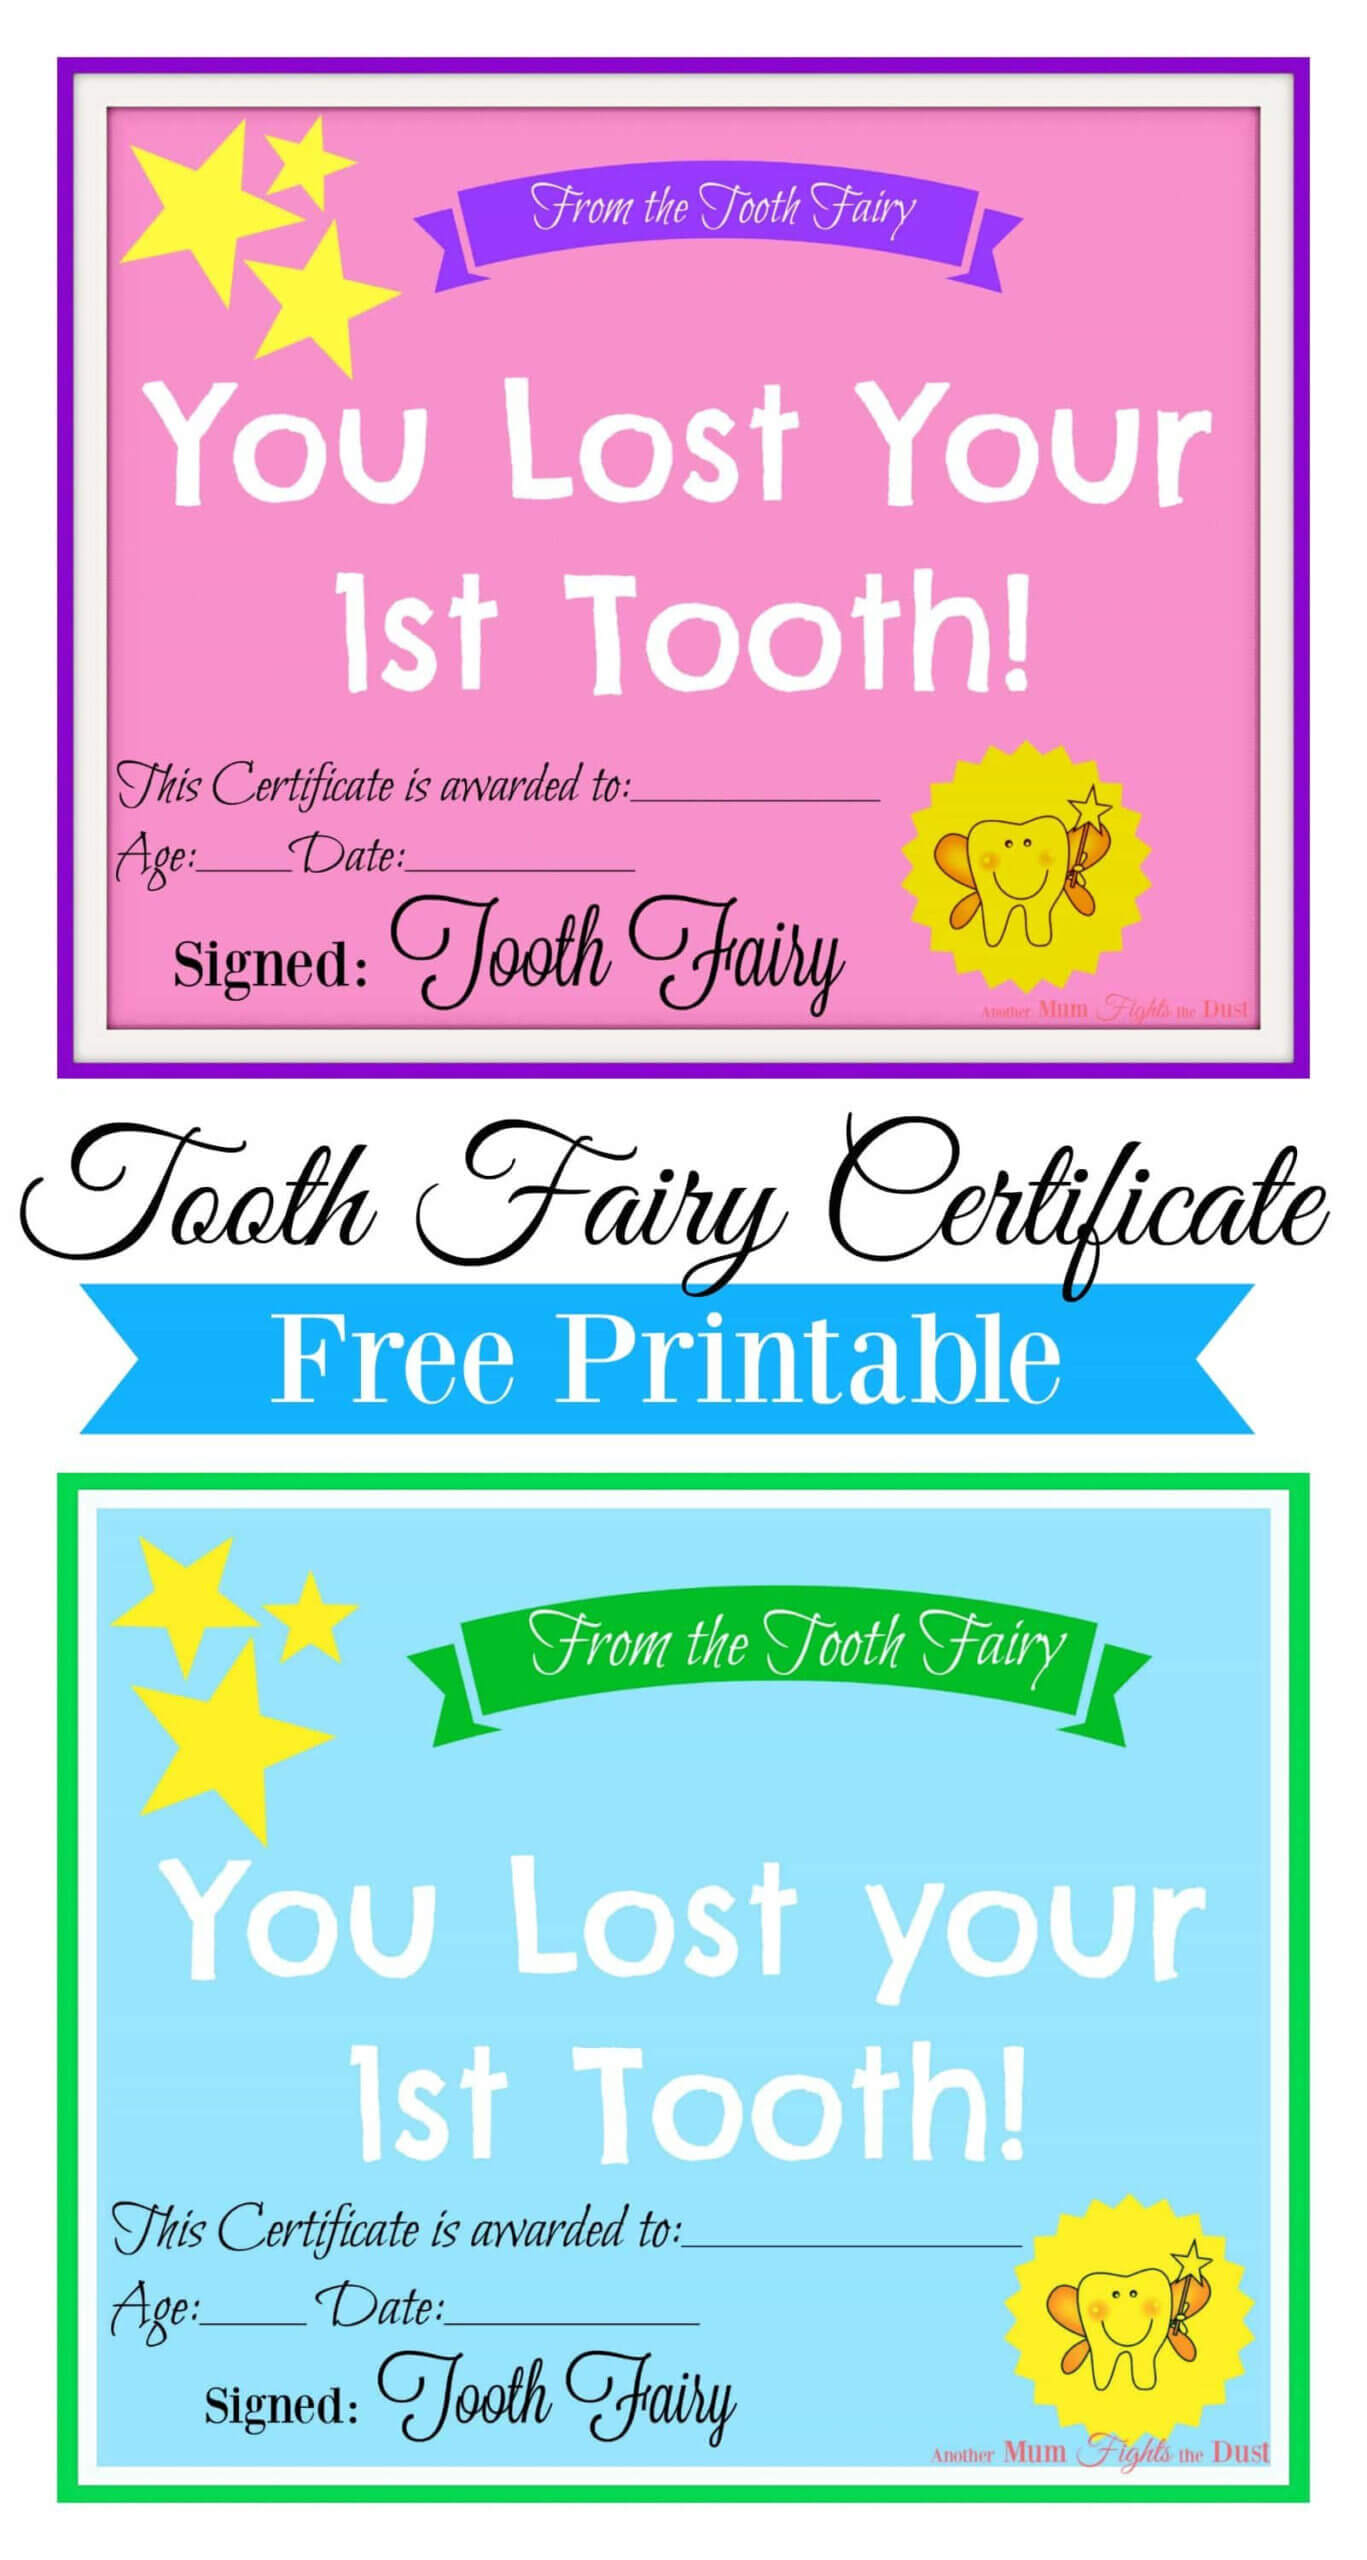 Free Printable Tooth Fairy Certificate | Tooth Fairy Regarding Tooth Fairy Certificate Template Free